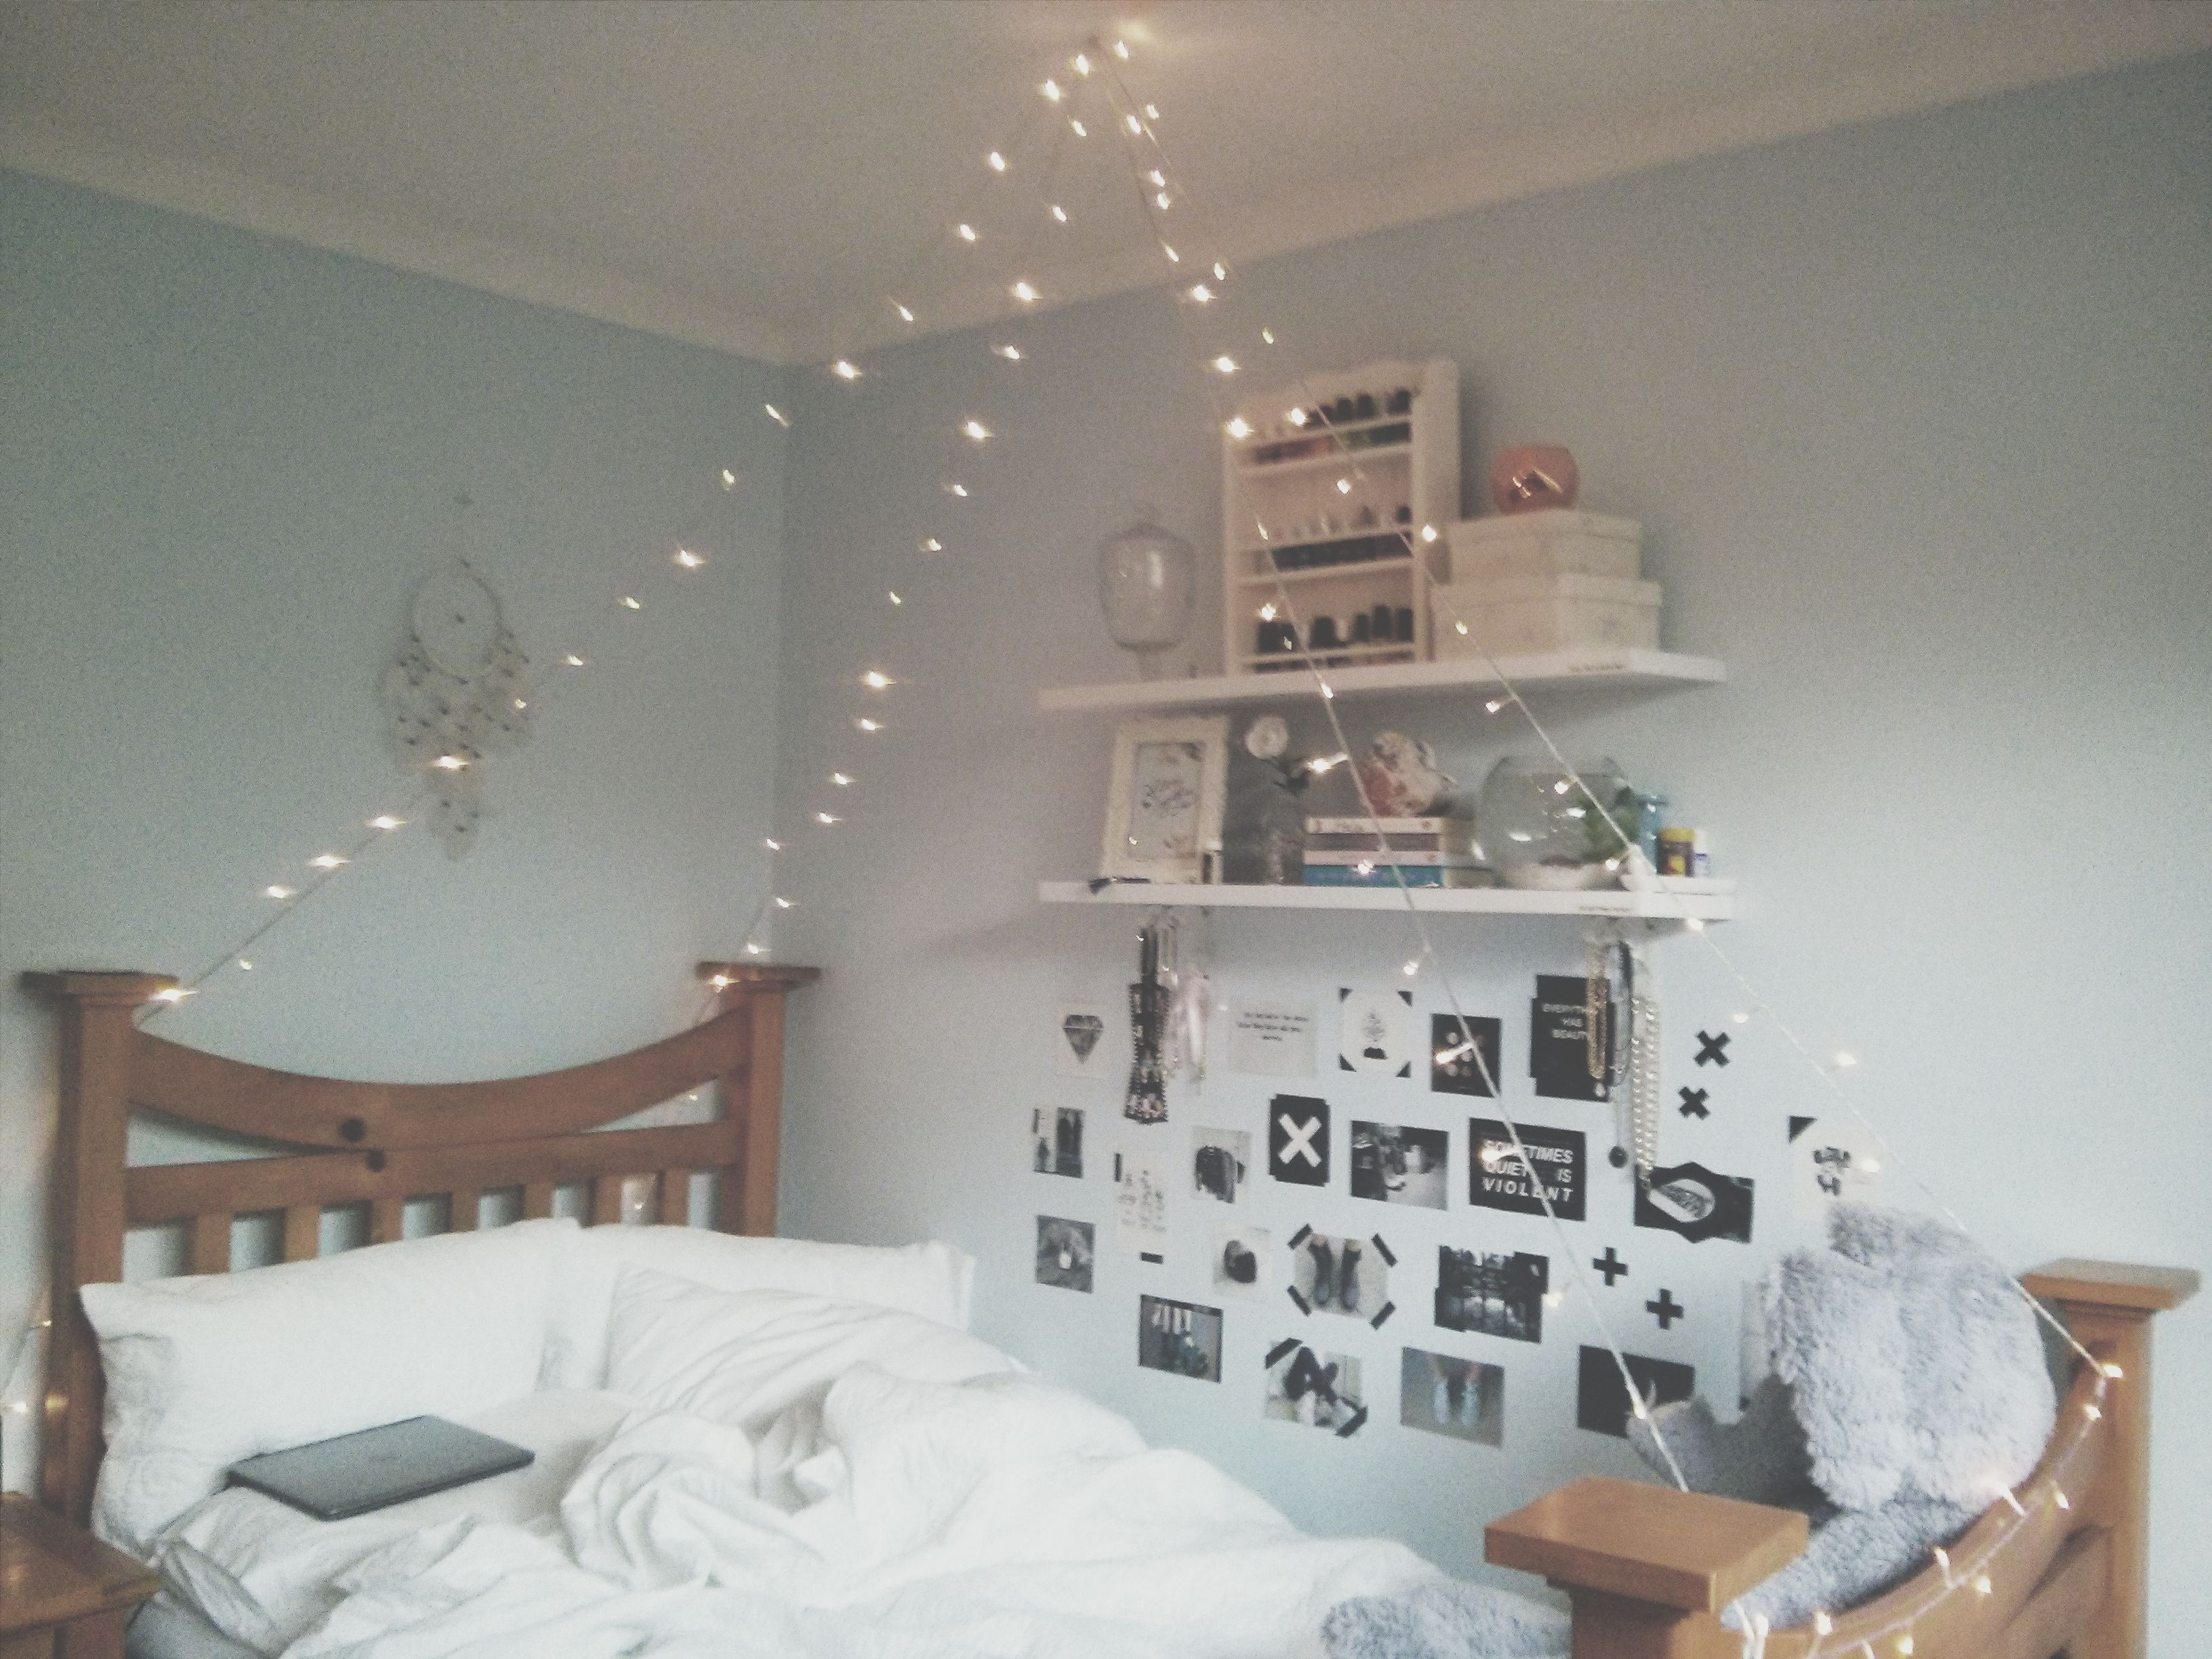 tumblr bedrooms inside tumblr bedroom ideas tumblr | room ideas